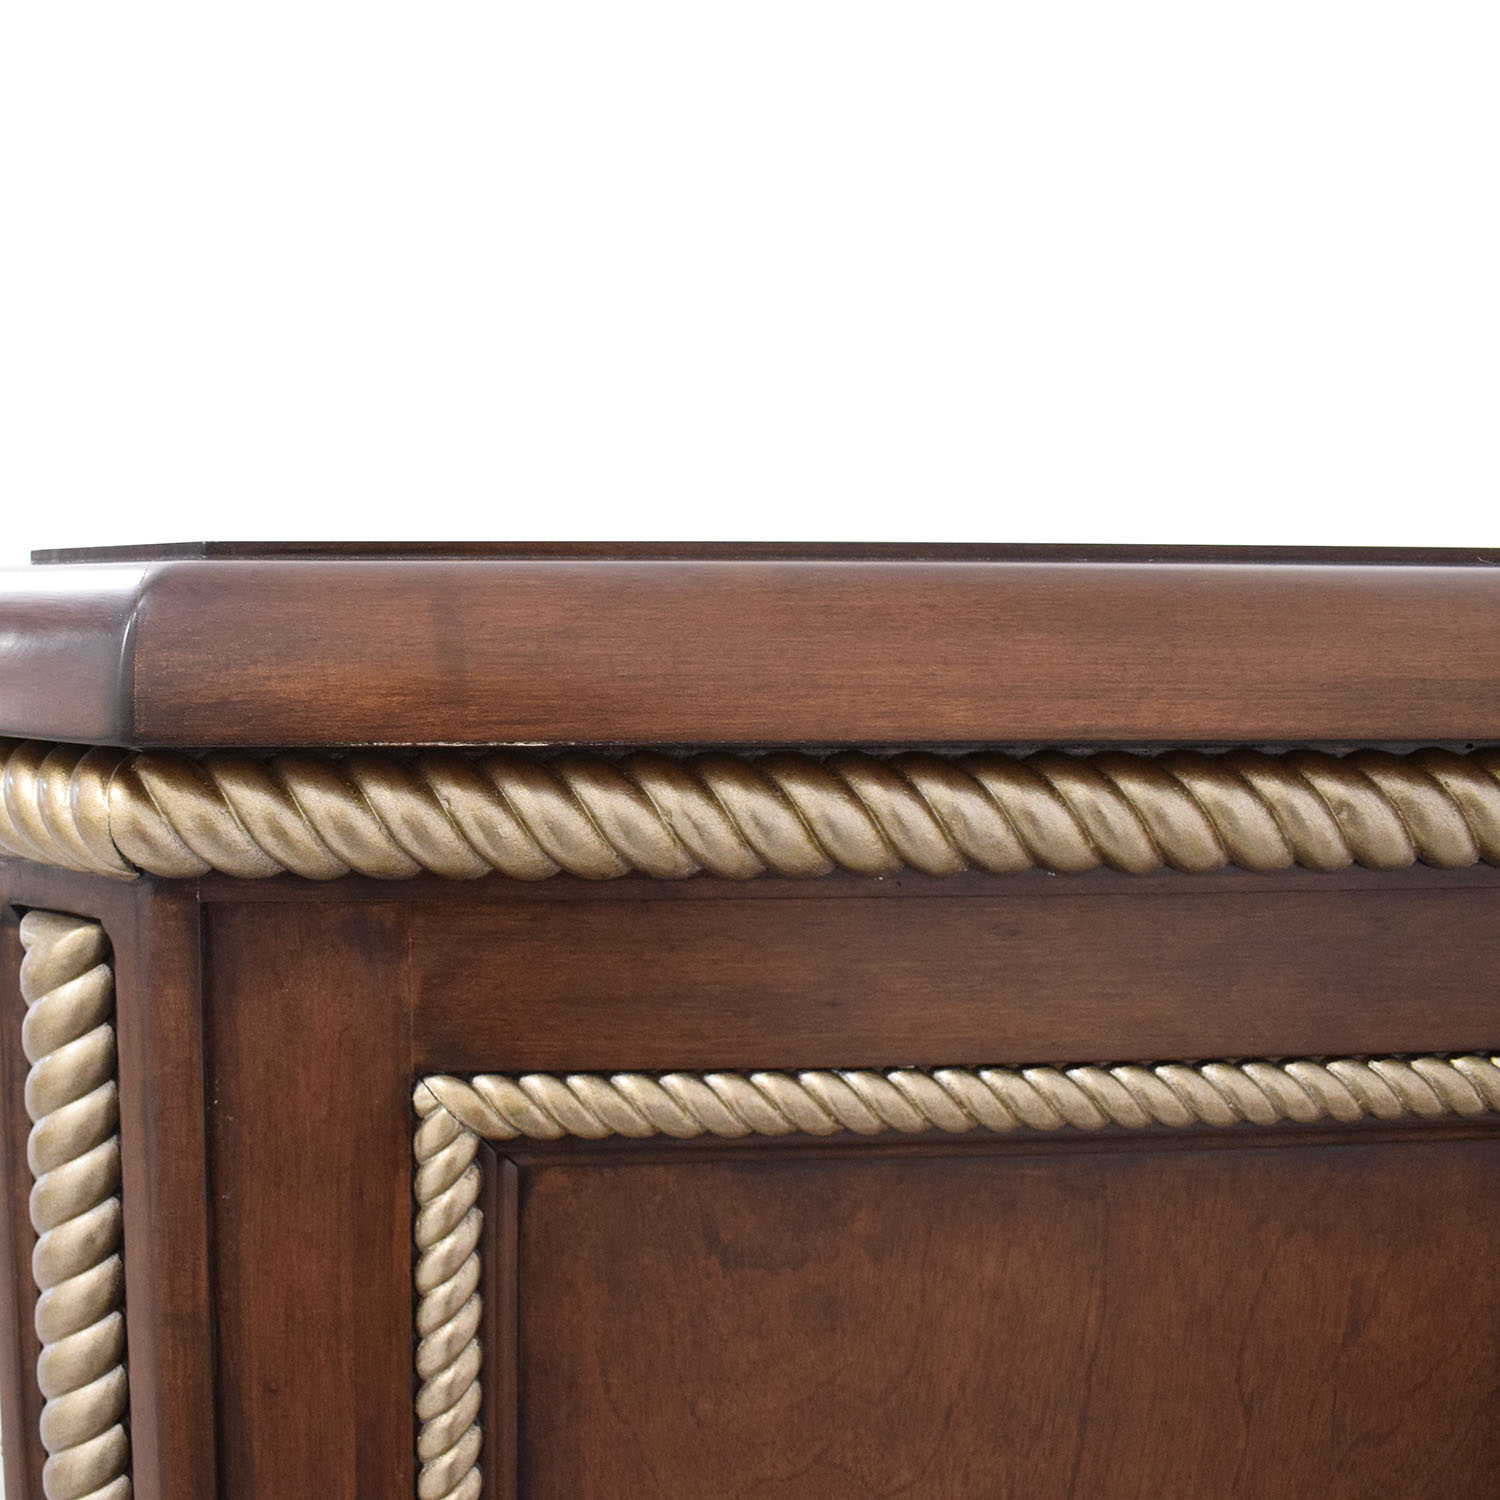 Swaim Furniture End Table Cabinet / Tables